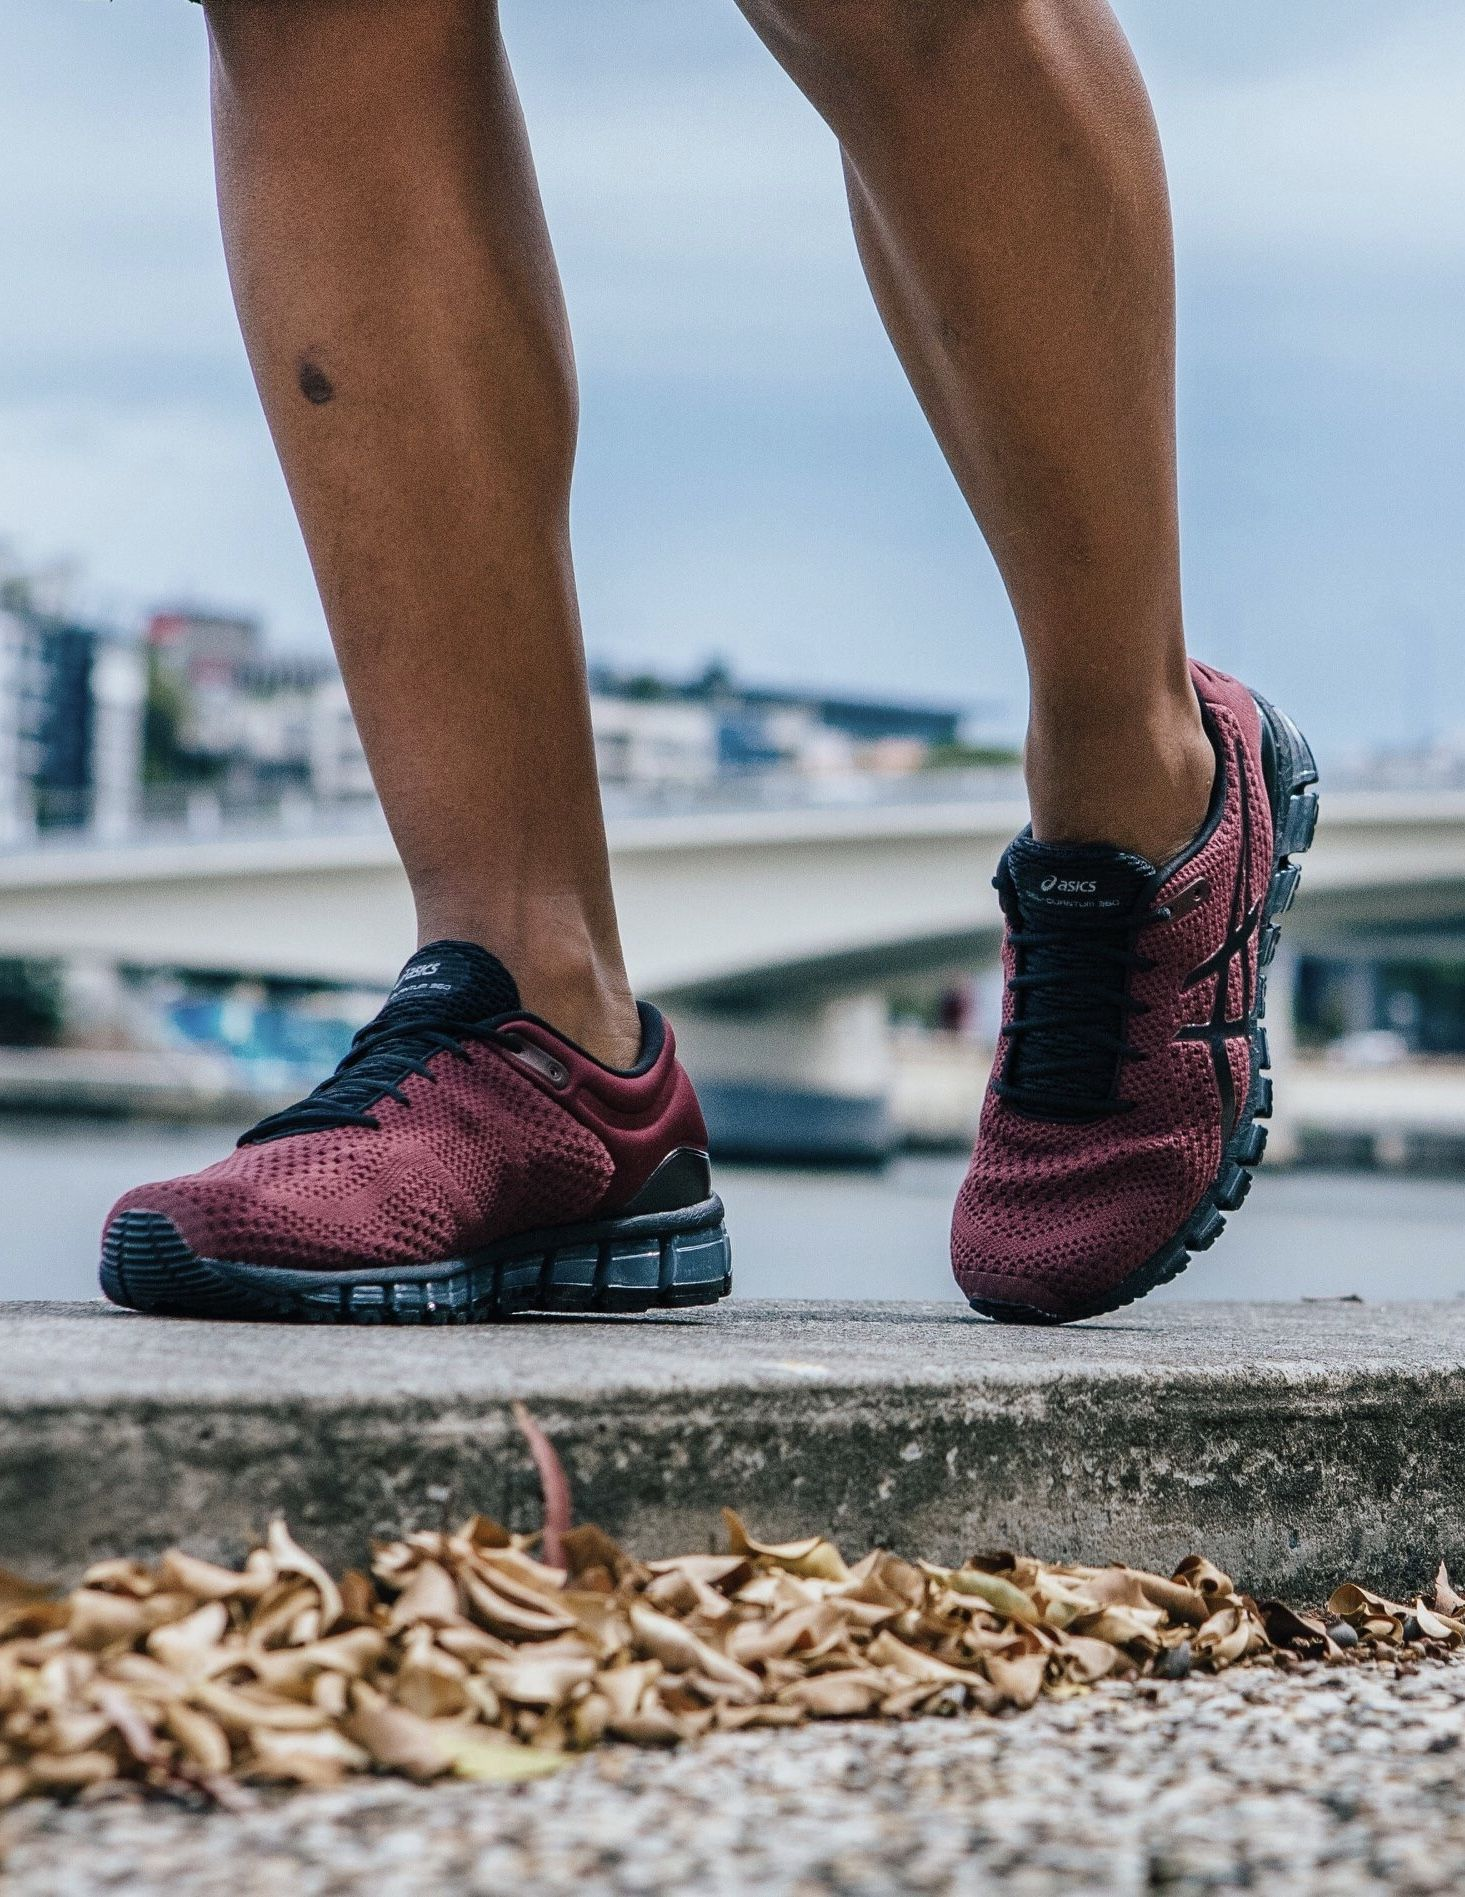 asics boat shoes, OFF 74%,Buy!